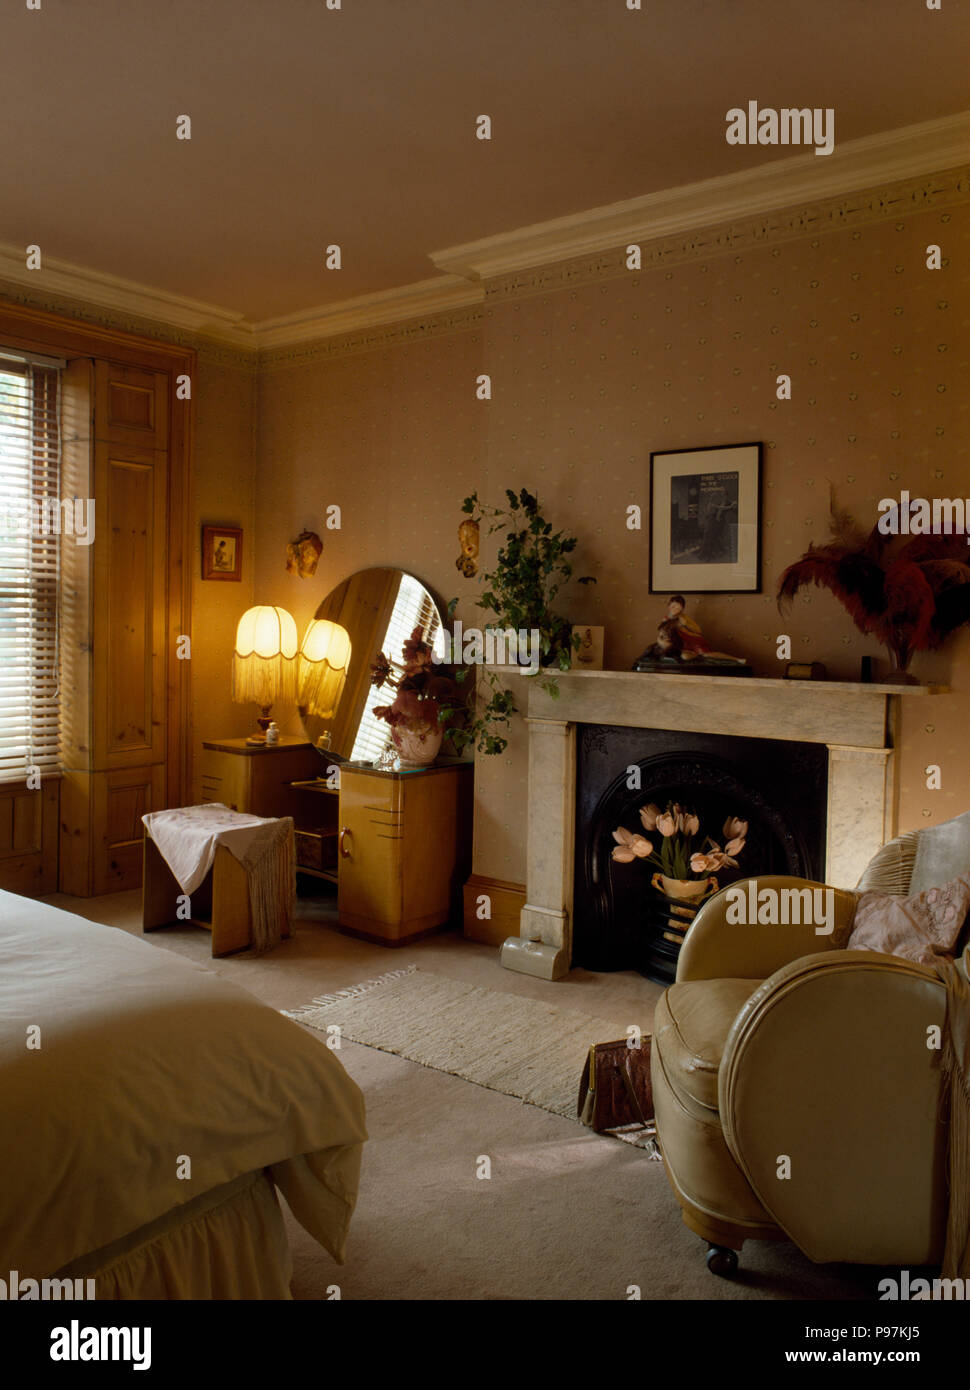 Lighted Lamp On Dressing Table Beside Fireplace In Thirties Style Bedroom